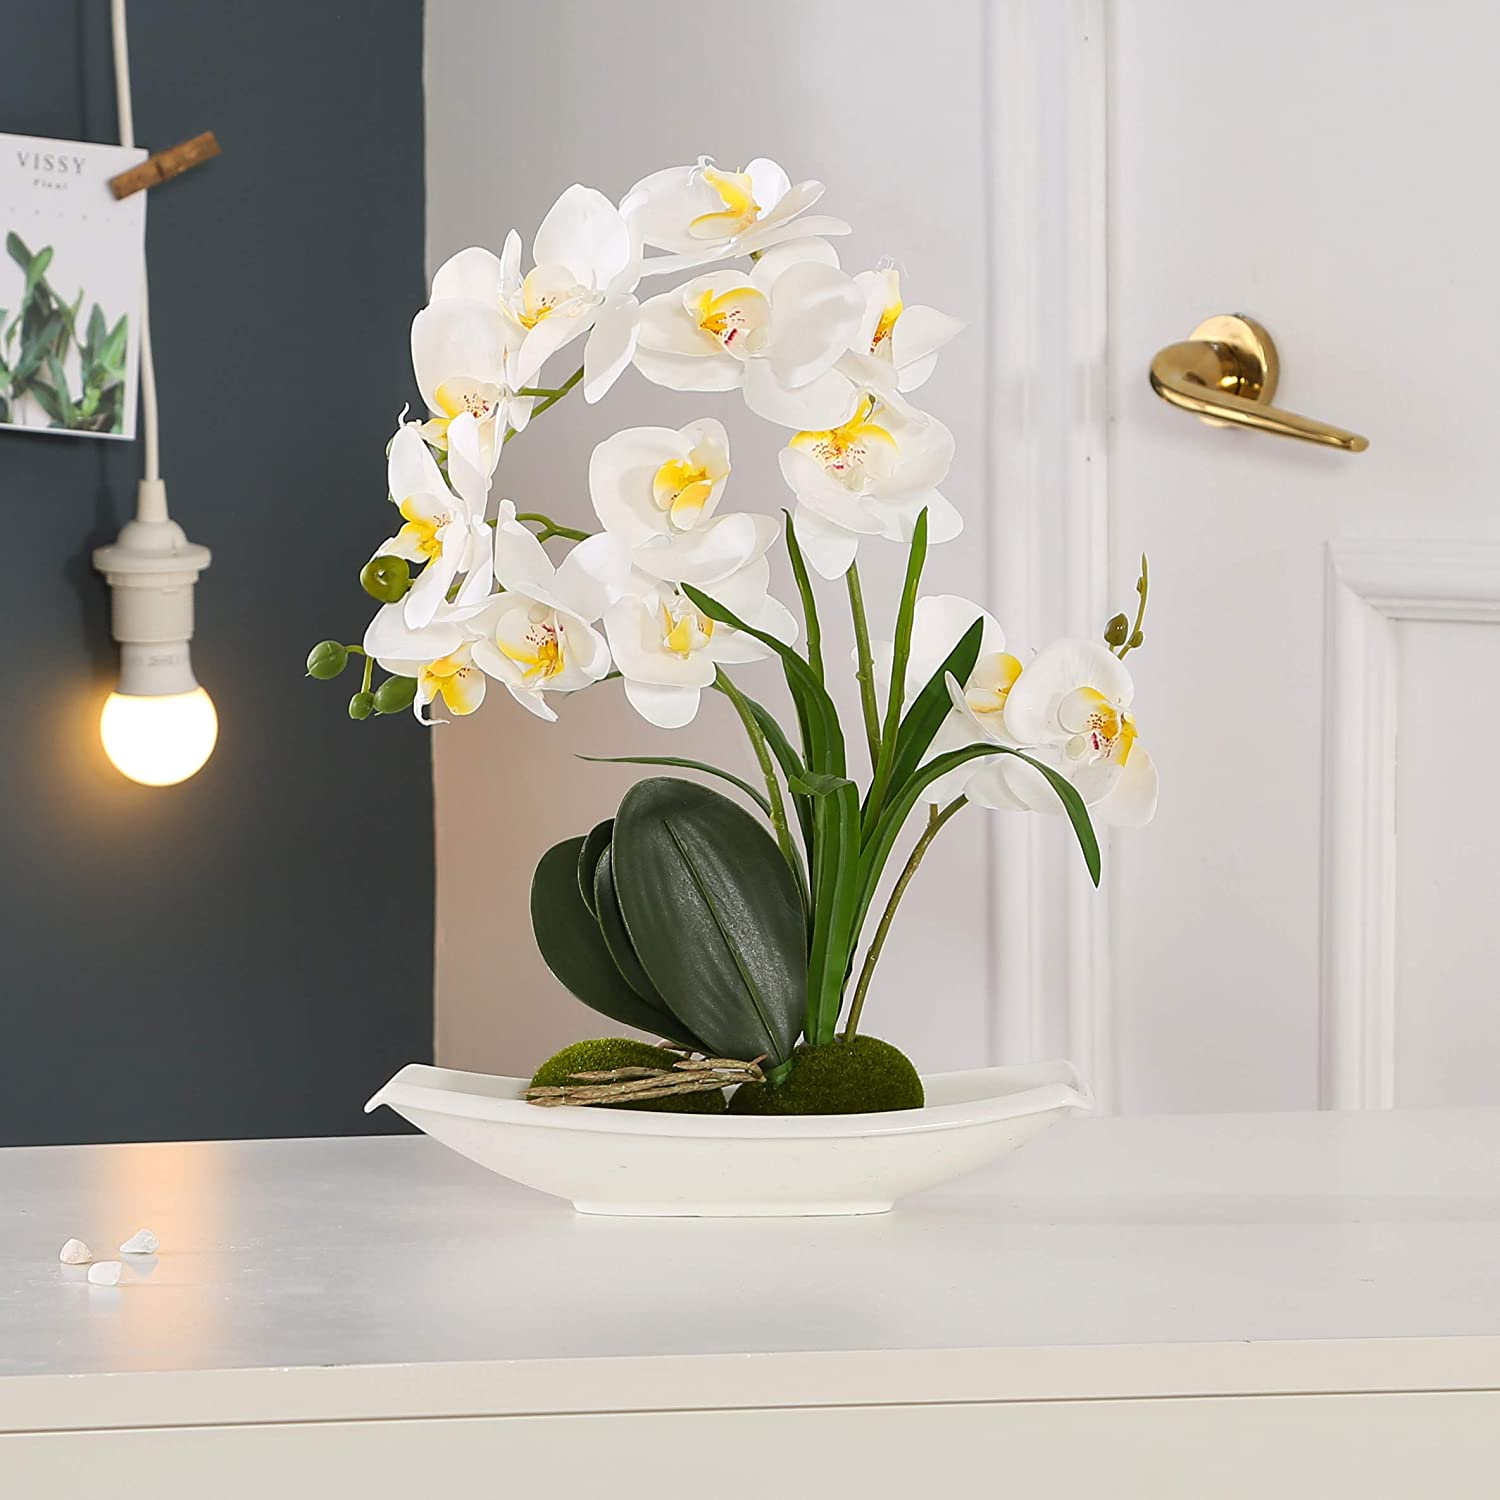 KINBEDY Artificial Bonsai Silk Orchids Phalaenopsis with Vase Home Office Decoration Party Wedding Decor, White.